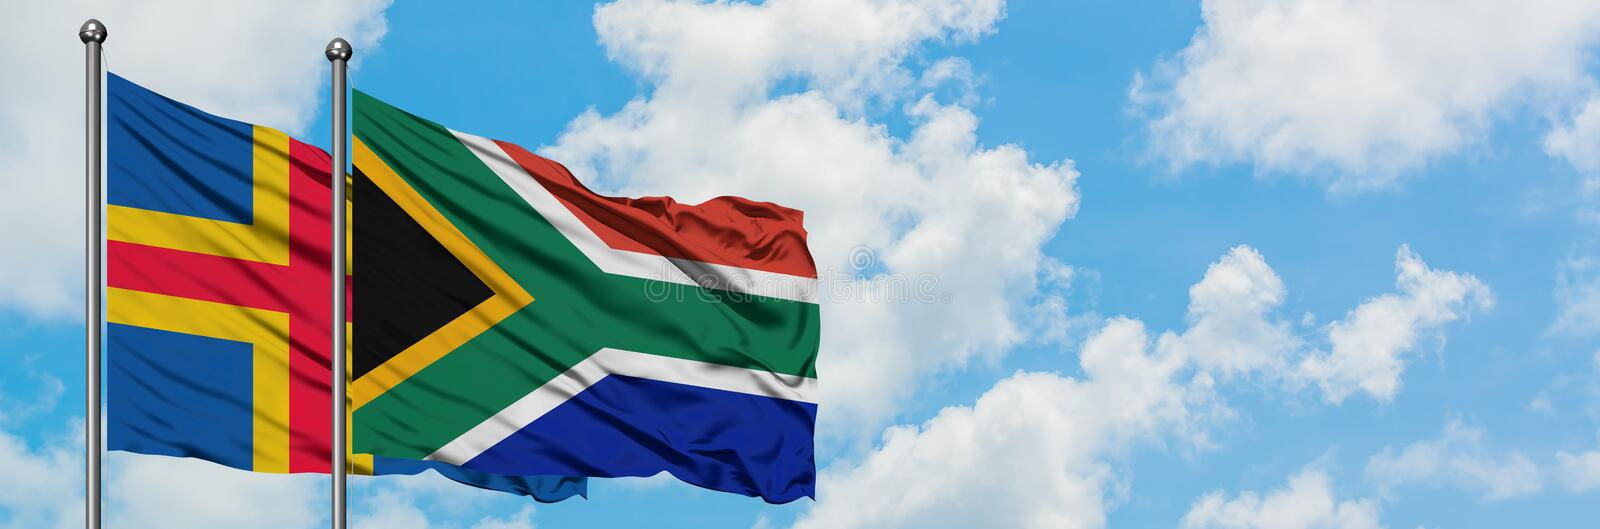 Aland Islands and South Africa flag waving in the wind against white cloudy blue sky together. Diplomacy concept, international royalty free illustration